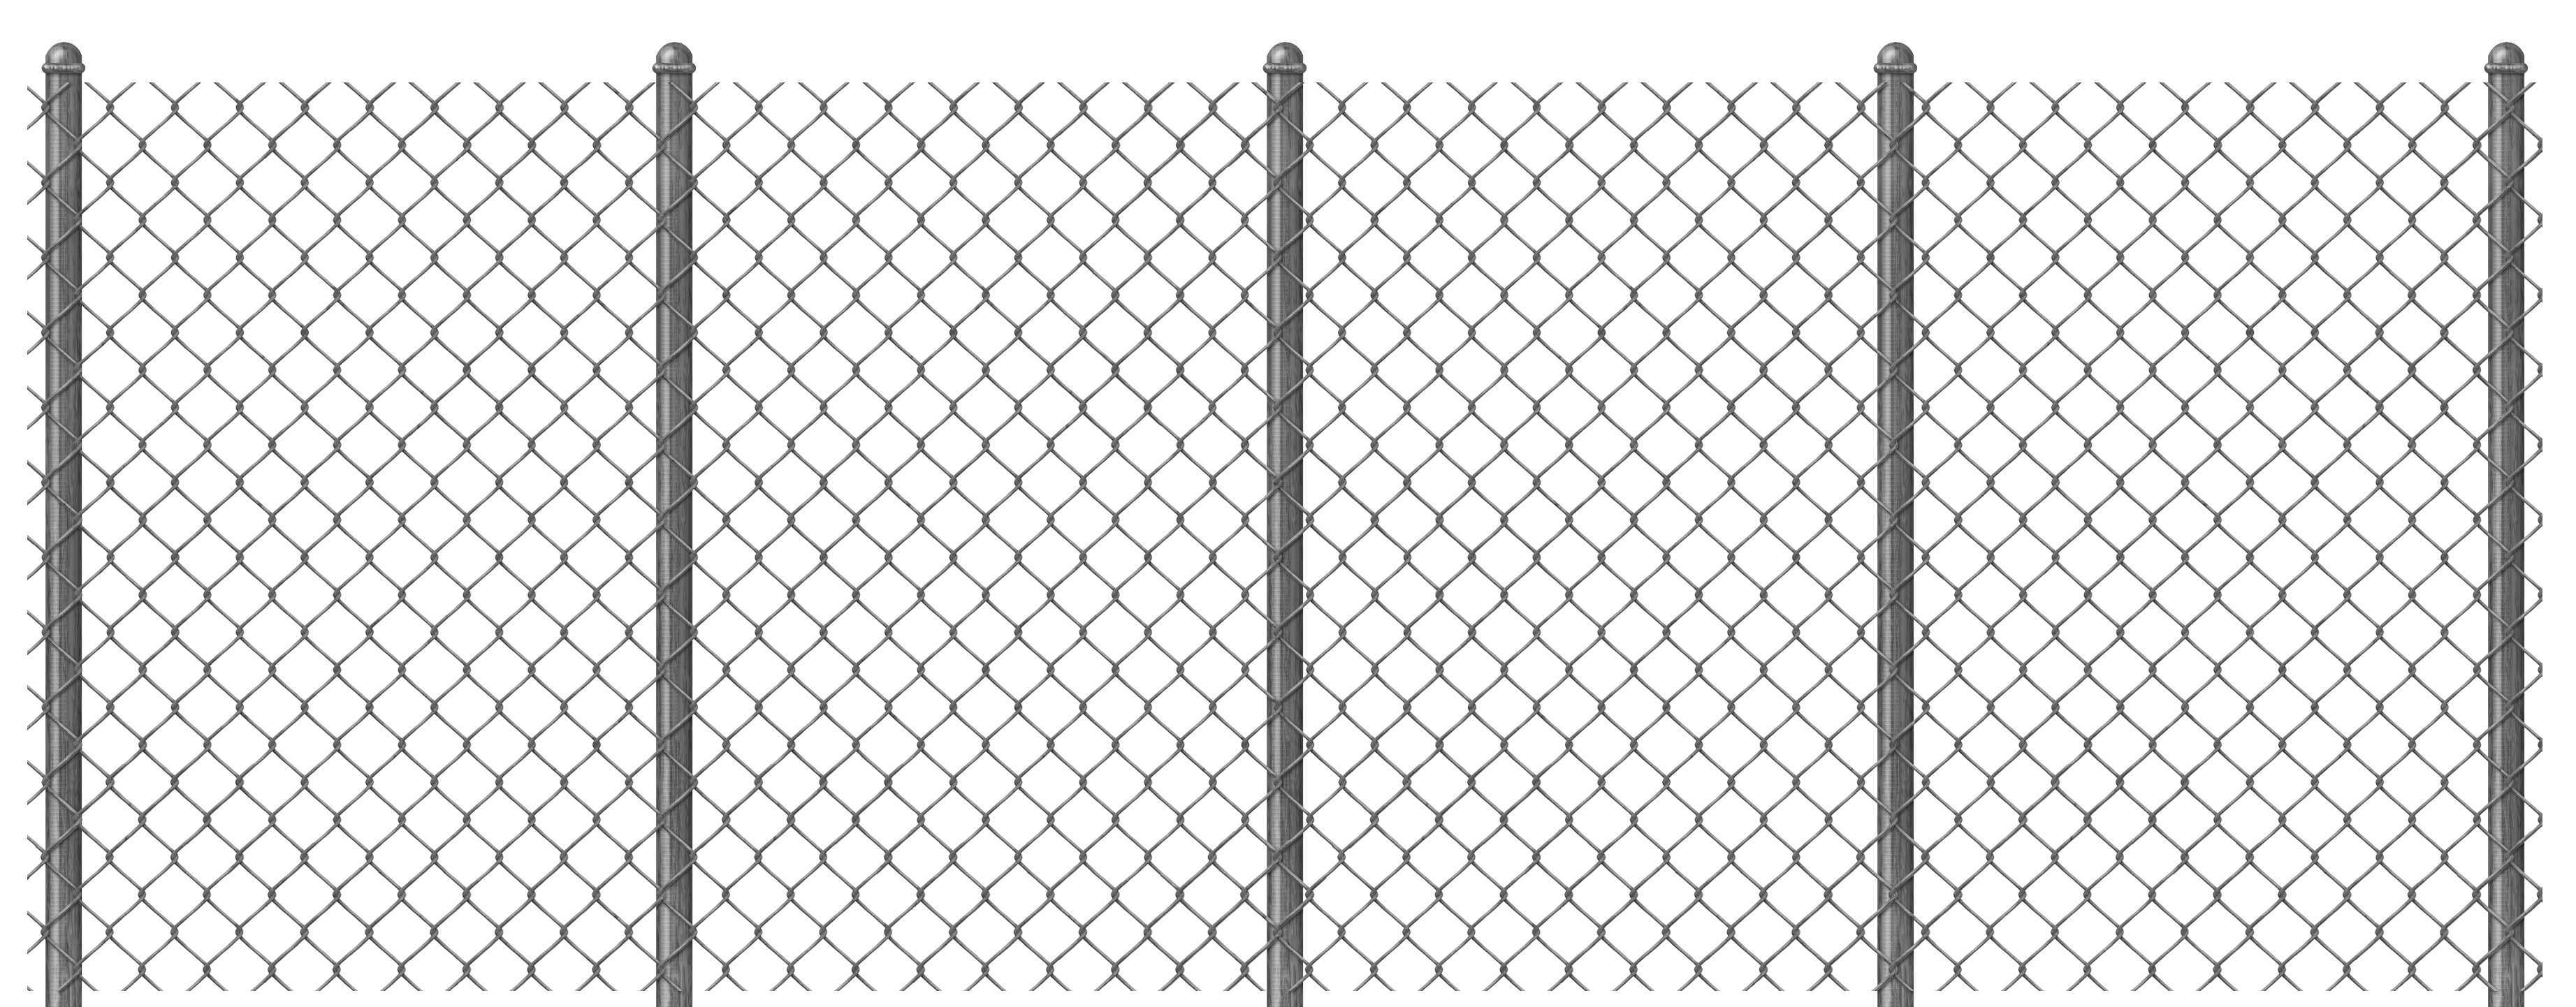 Mesh wire fence clipart #4